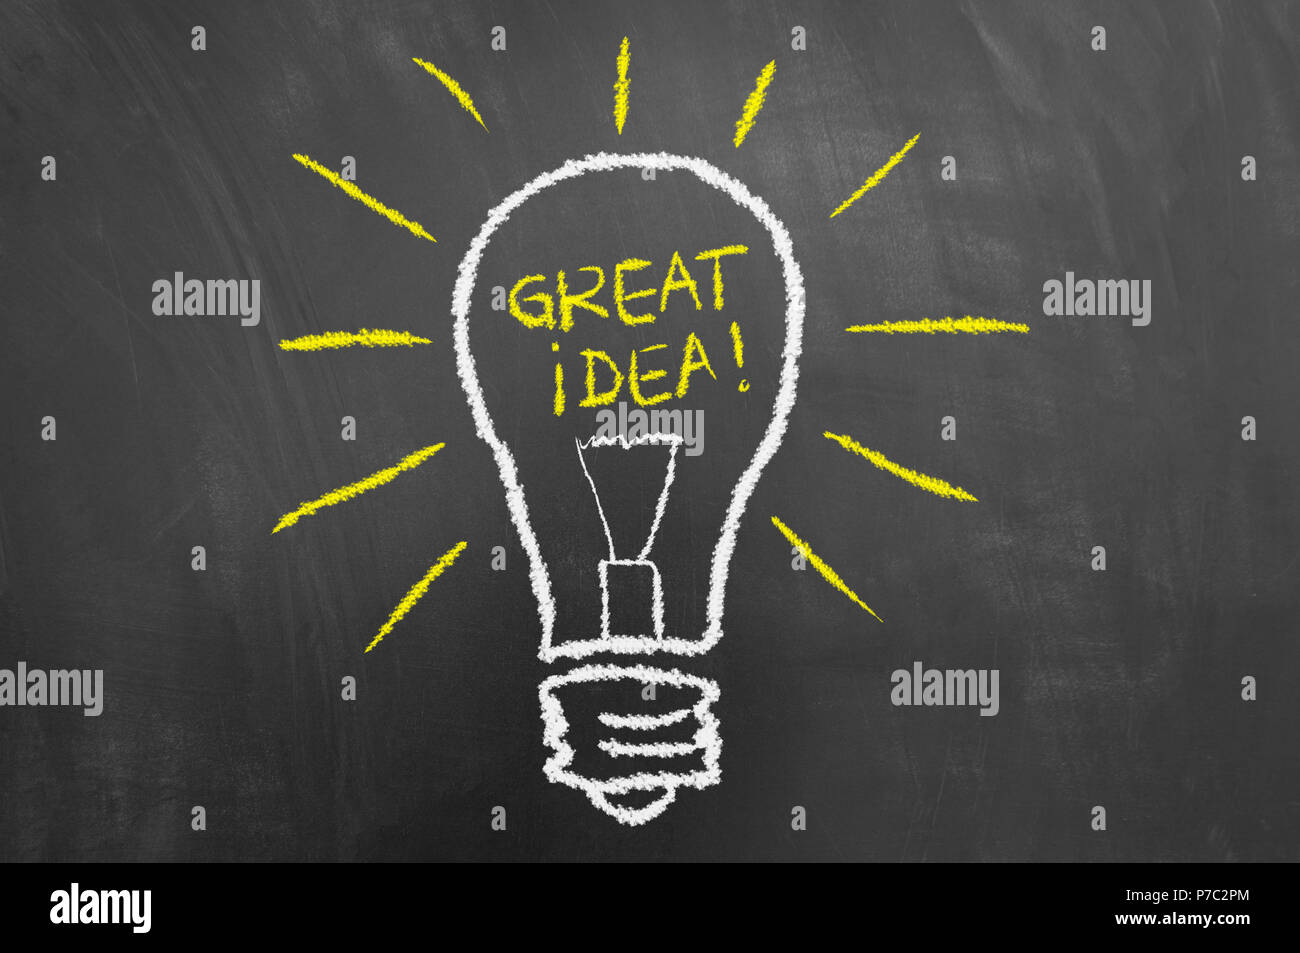 Great idea light bulb chalk drawing and text on chalkboard or blackboard as creativity innovation new invention concept - Stock Image